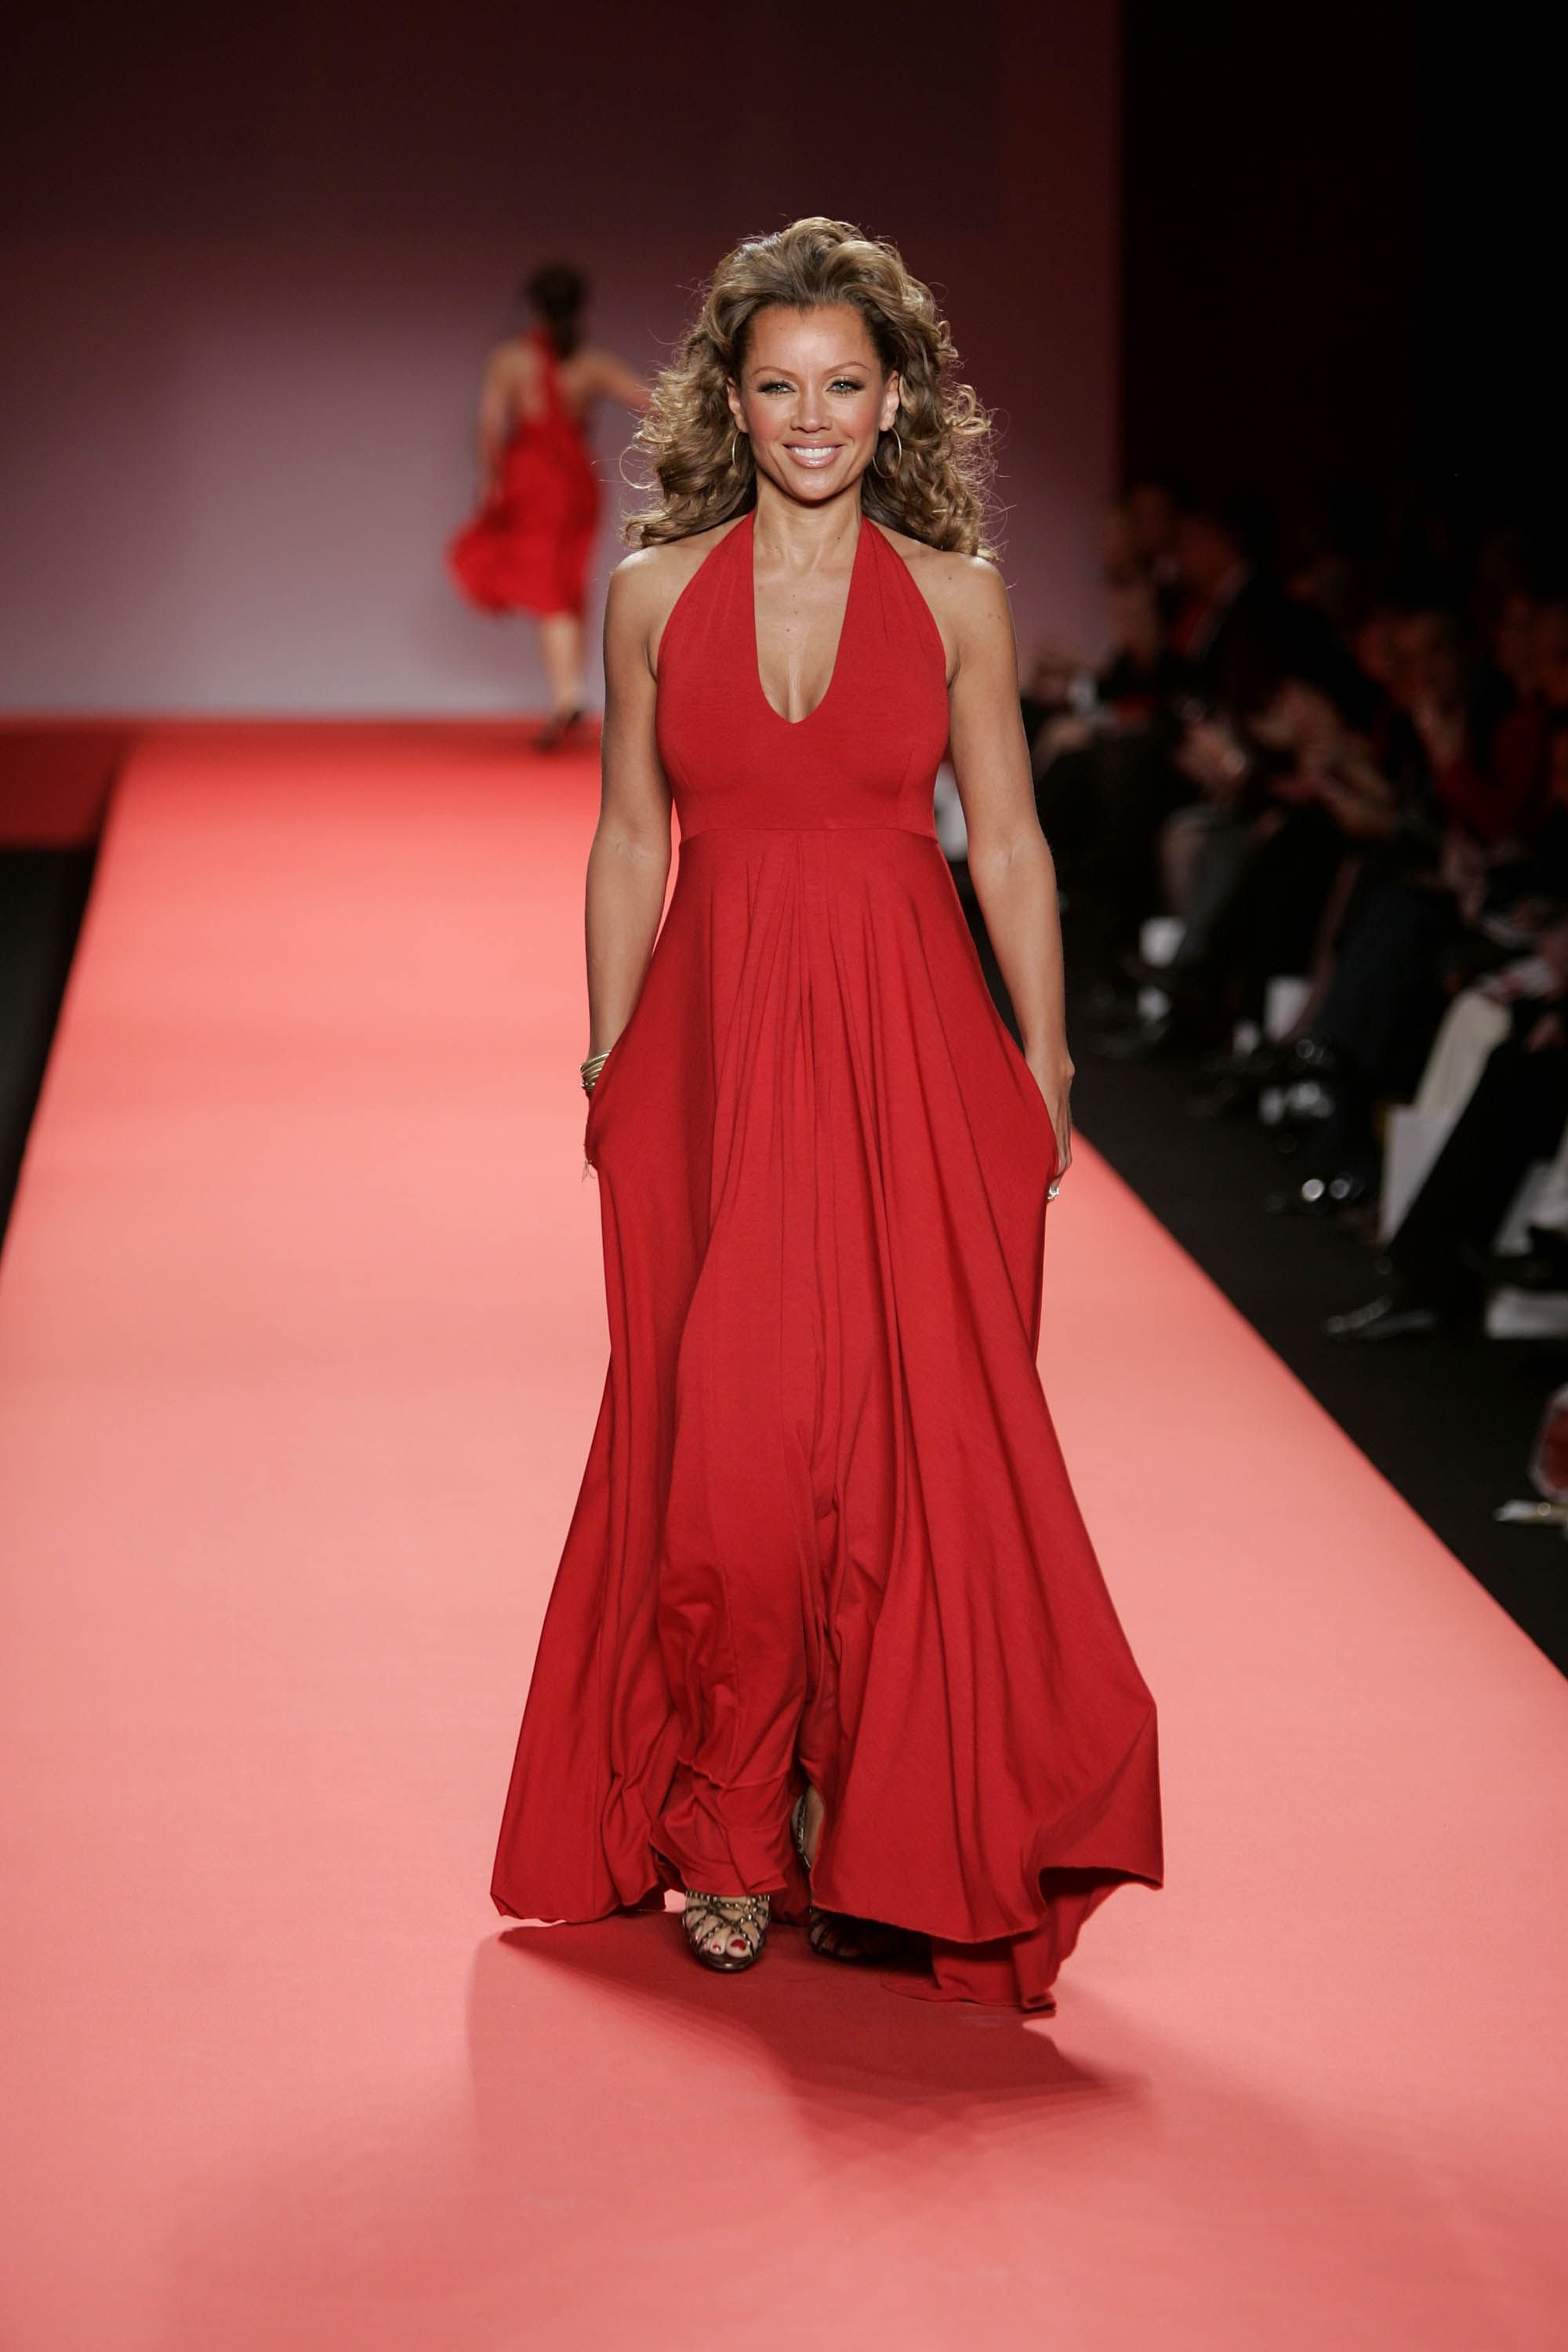 Vanessa Williams walks the runway at the Heart Truth Red Dress Collection during the Olympus Fashion Week at Bryant Park on February 4, 2004 in New York City. | Source: Getty Images